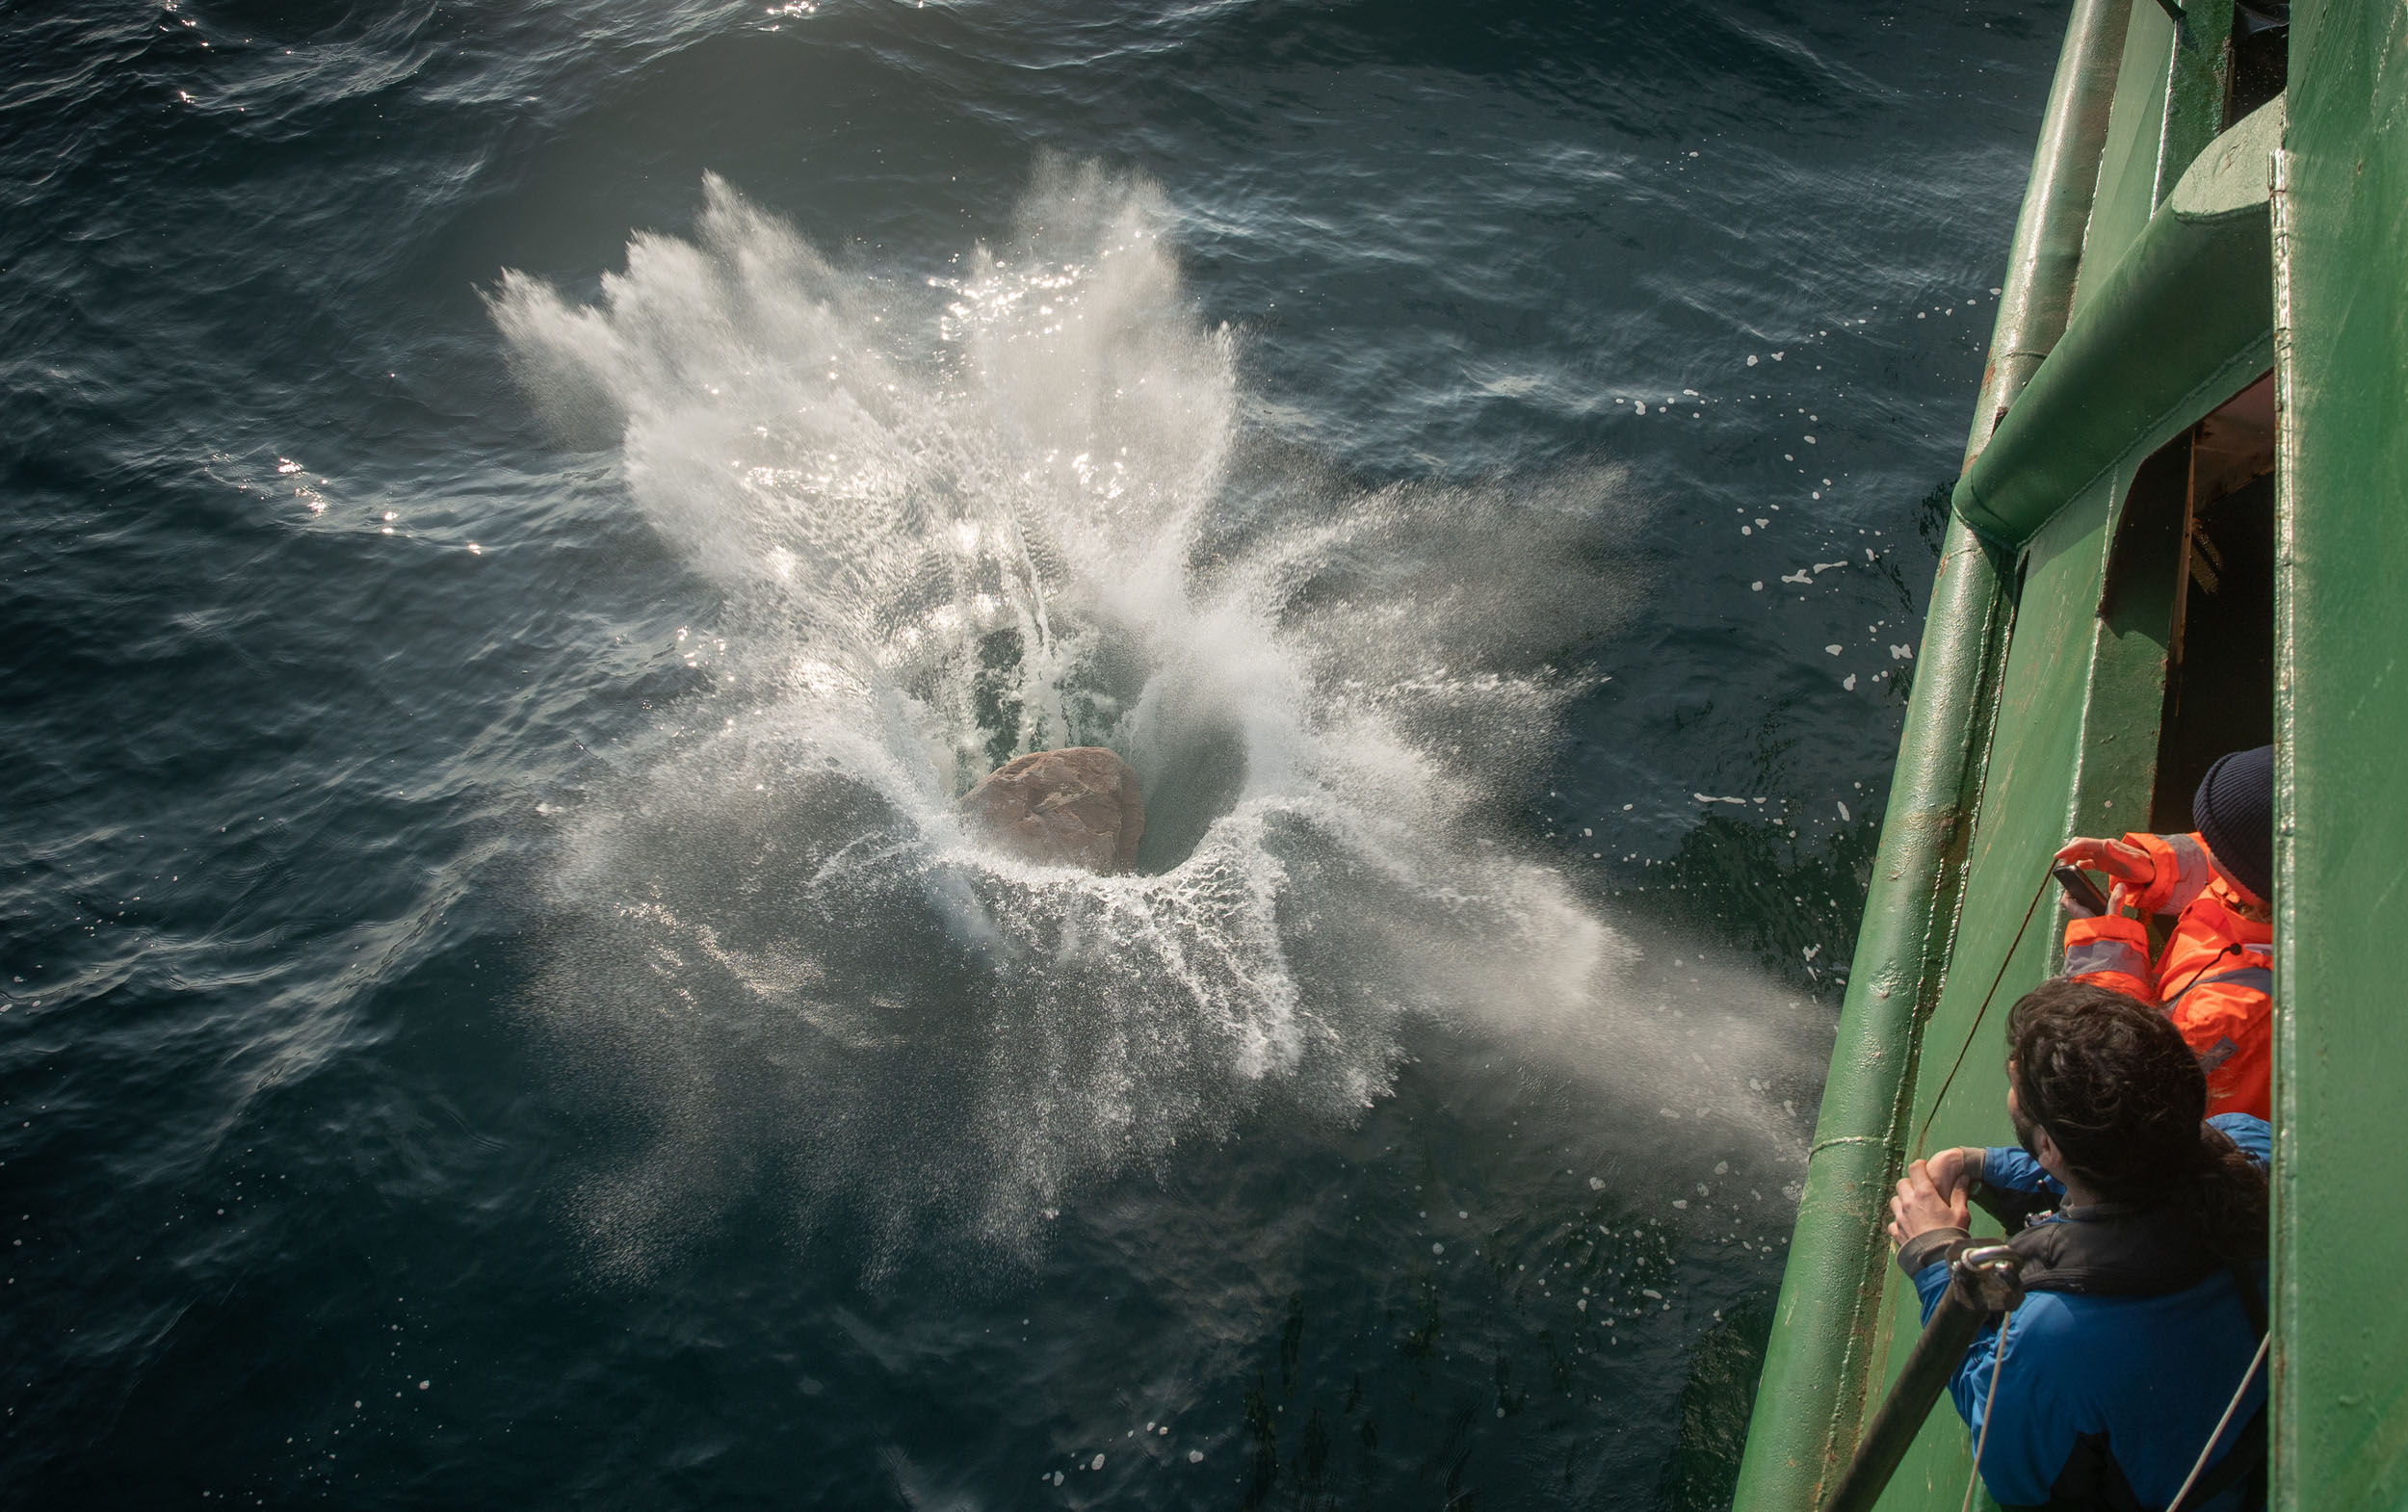 A boulder splashes into the water as crewmembers look on.